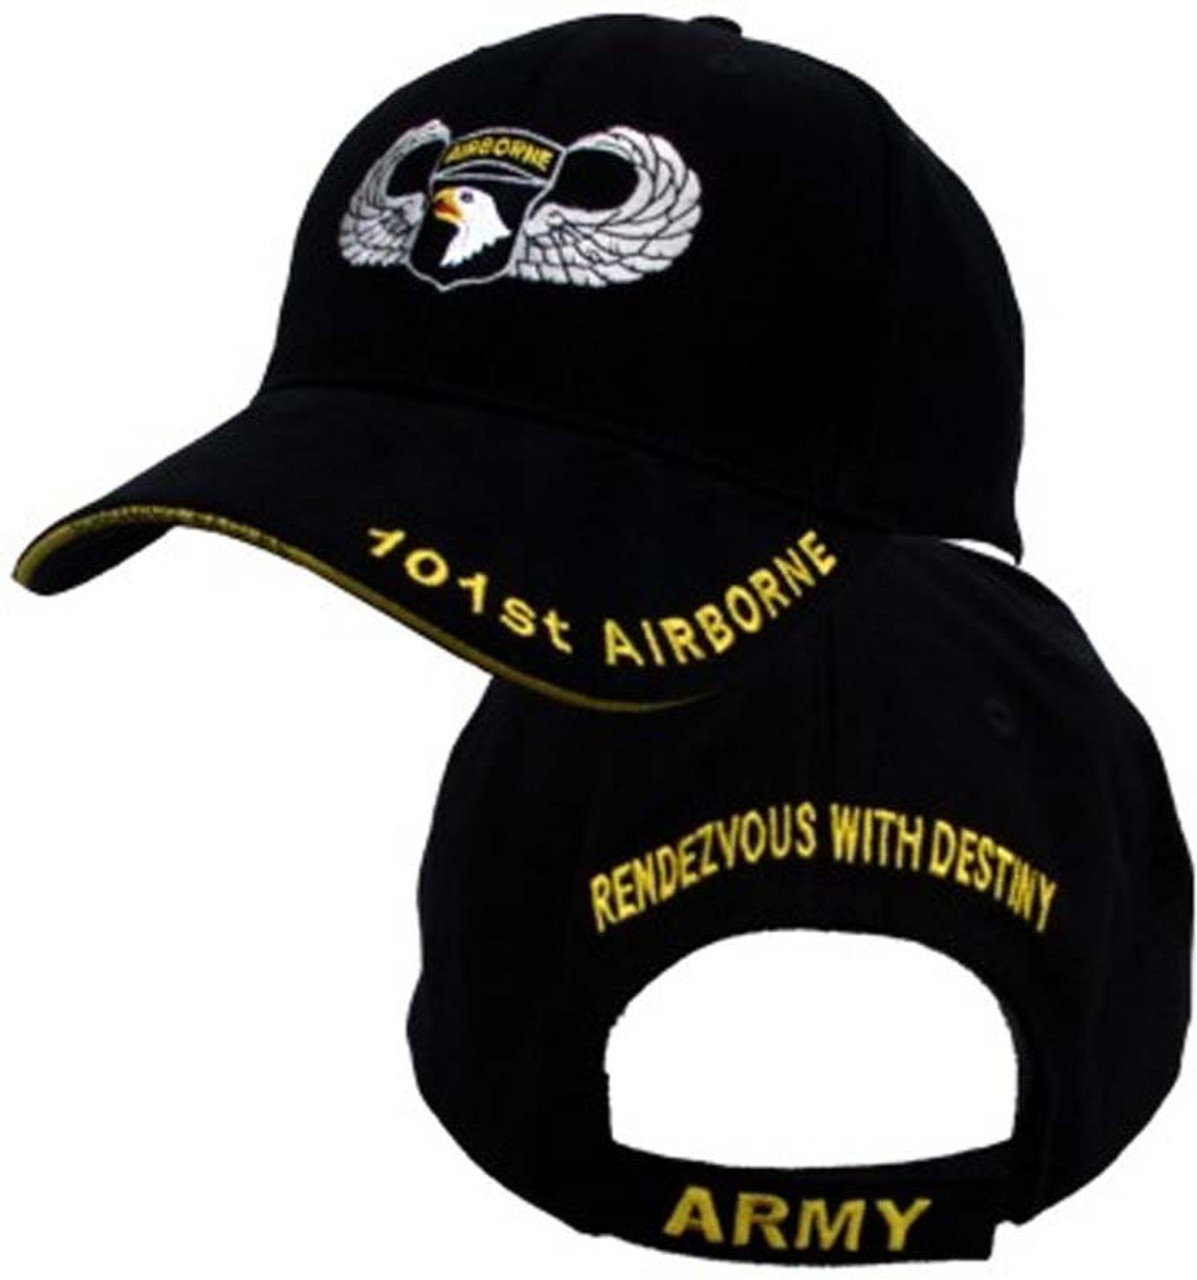 6b5dc78eed5 101st Airborne Insignia Hat - U.S. Army Officially Licensed Military Hat  Baseball Cap